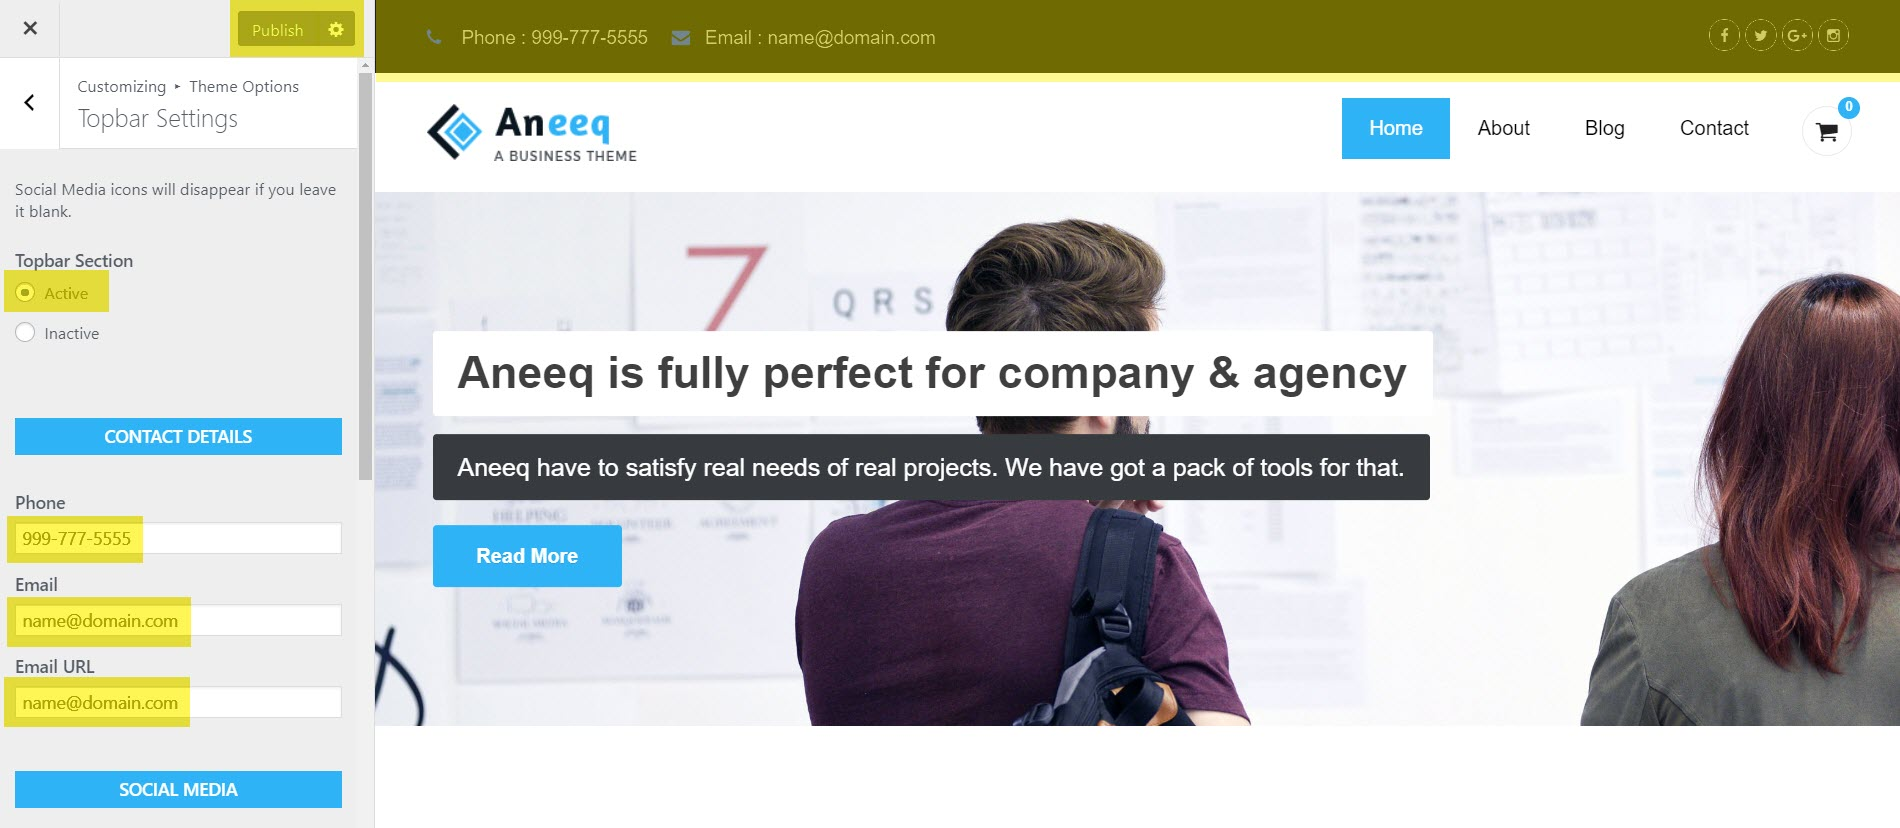 aneeq-wordpress-theme-homepage-topbar-set-up